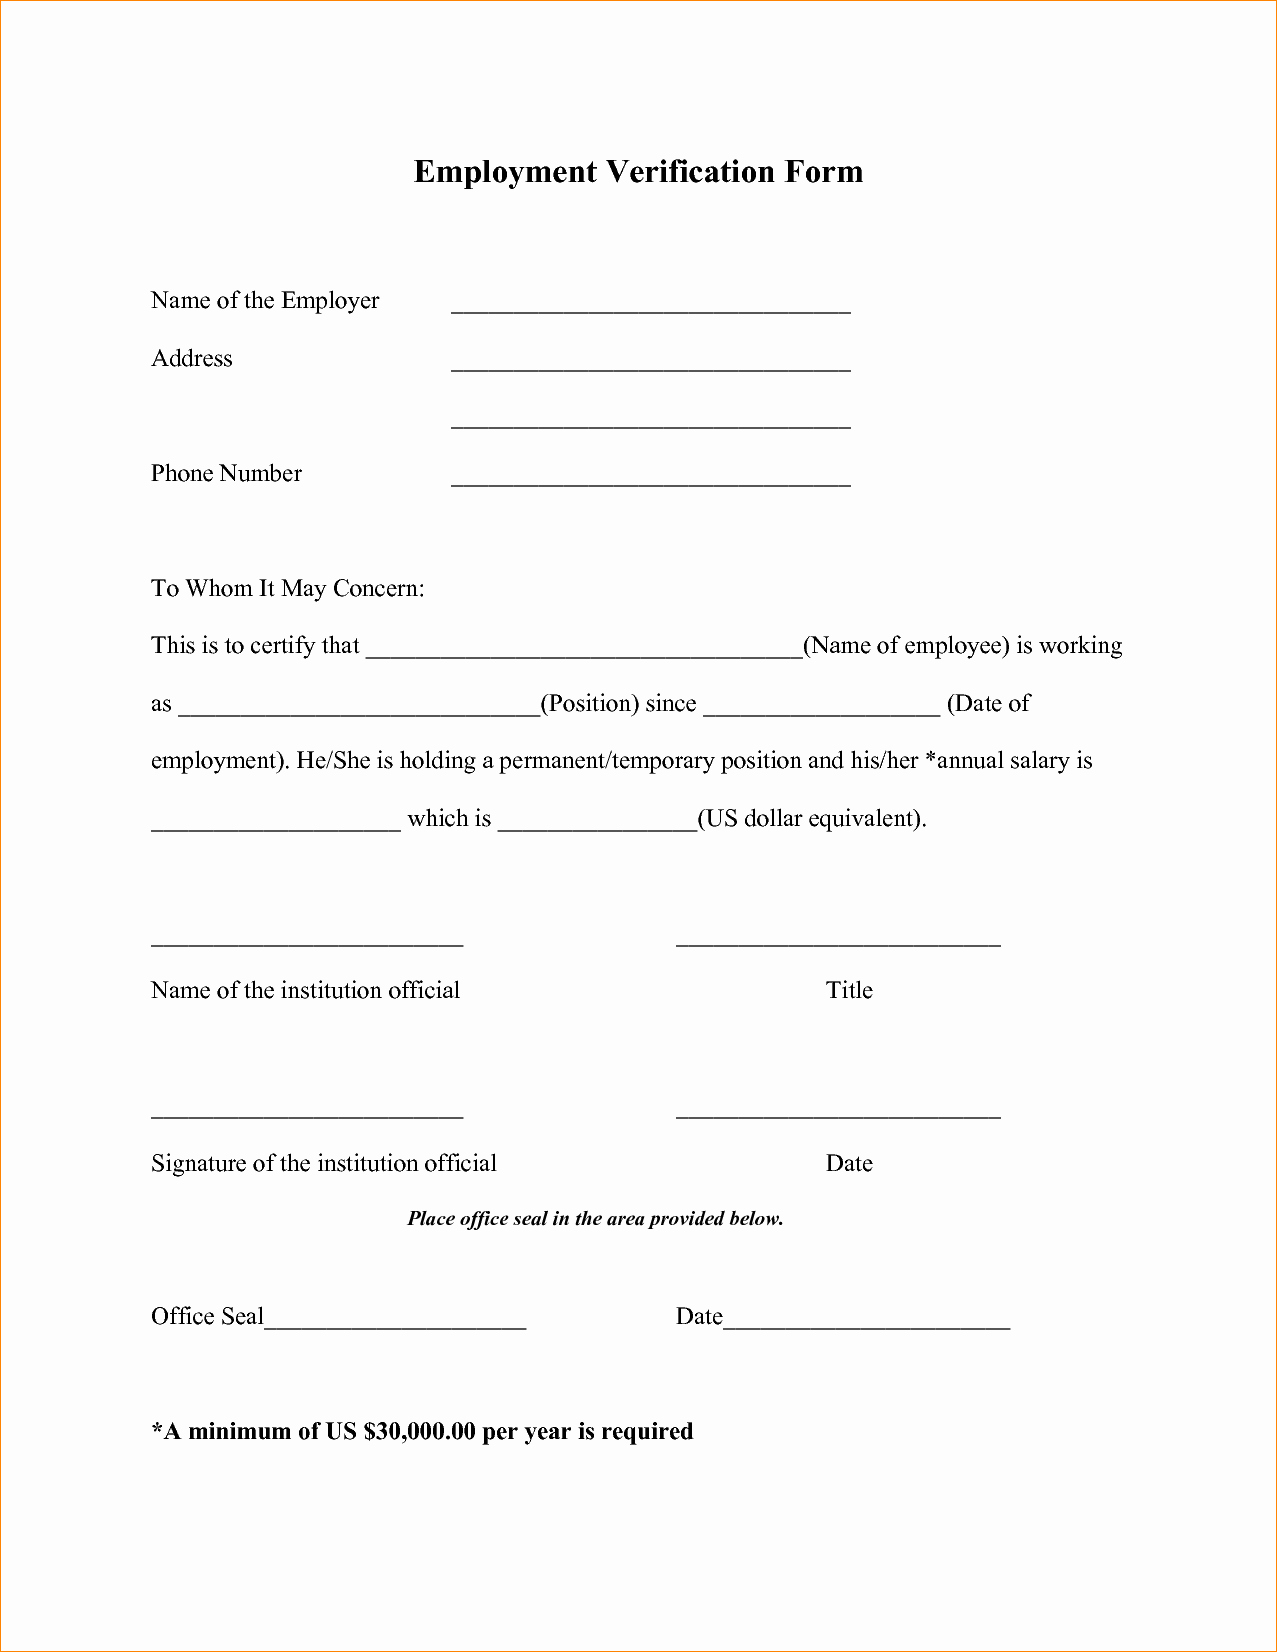 Employment Verification form Template Awesome asic Verification Resume Teachersites Web Fc2